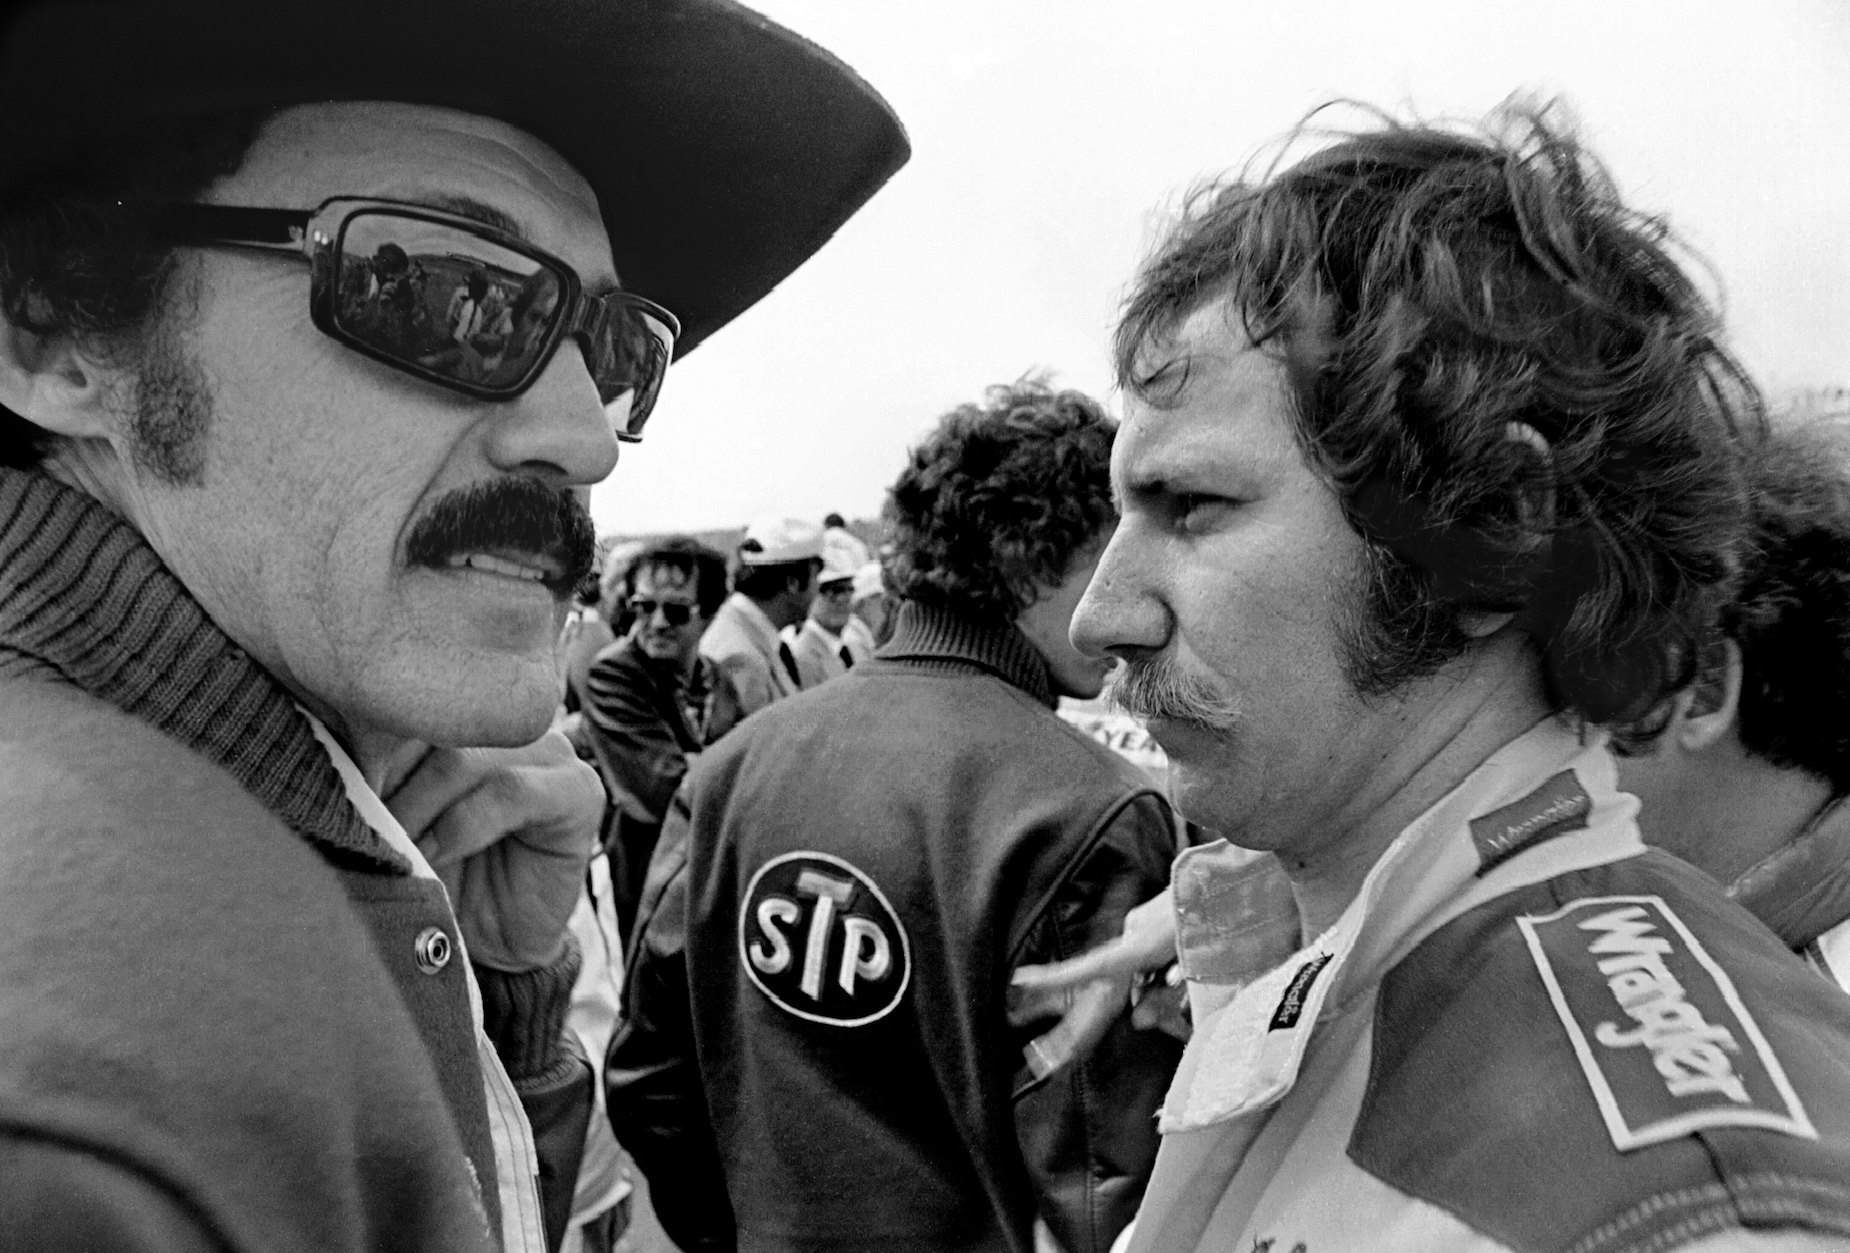 Richard Petty's First Encounter With Dale Earnhardt Sr. Involved a 9-Car Wreck and a Finger-Pointing Confrontation